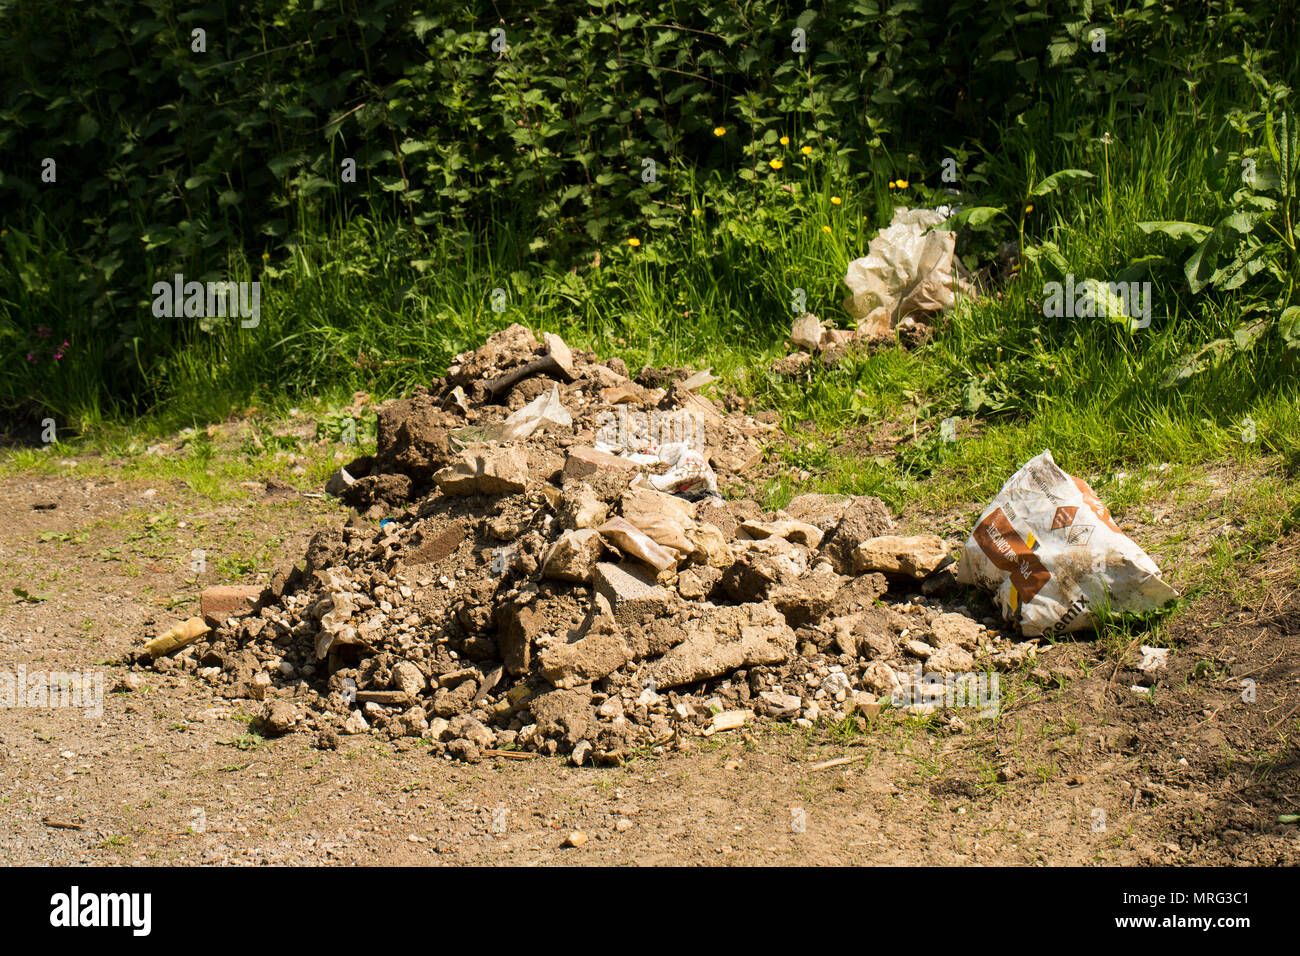 Rubble and bags dumped in a country lane in the entrance to a gate leading to a railway in North Dorset England UK GB - Stock Image